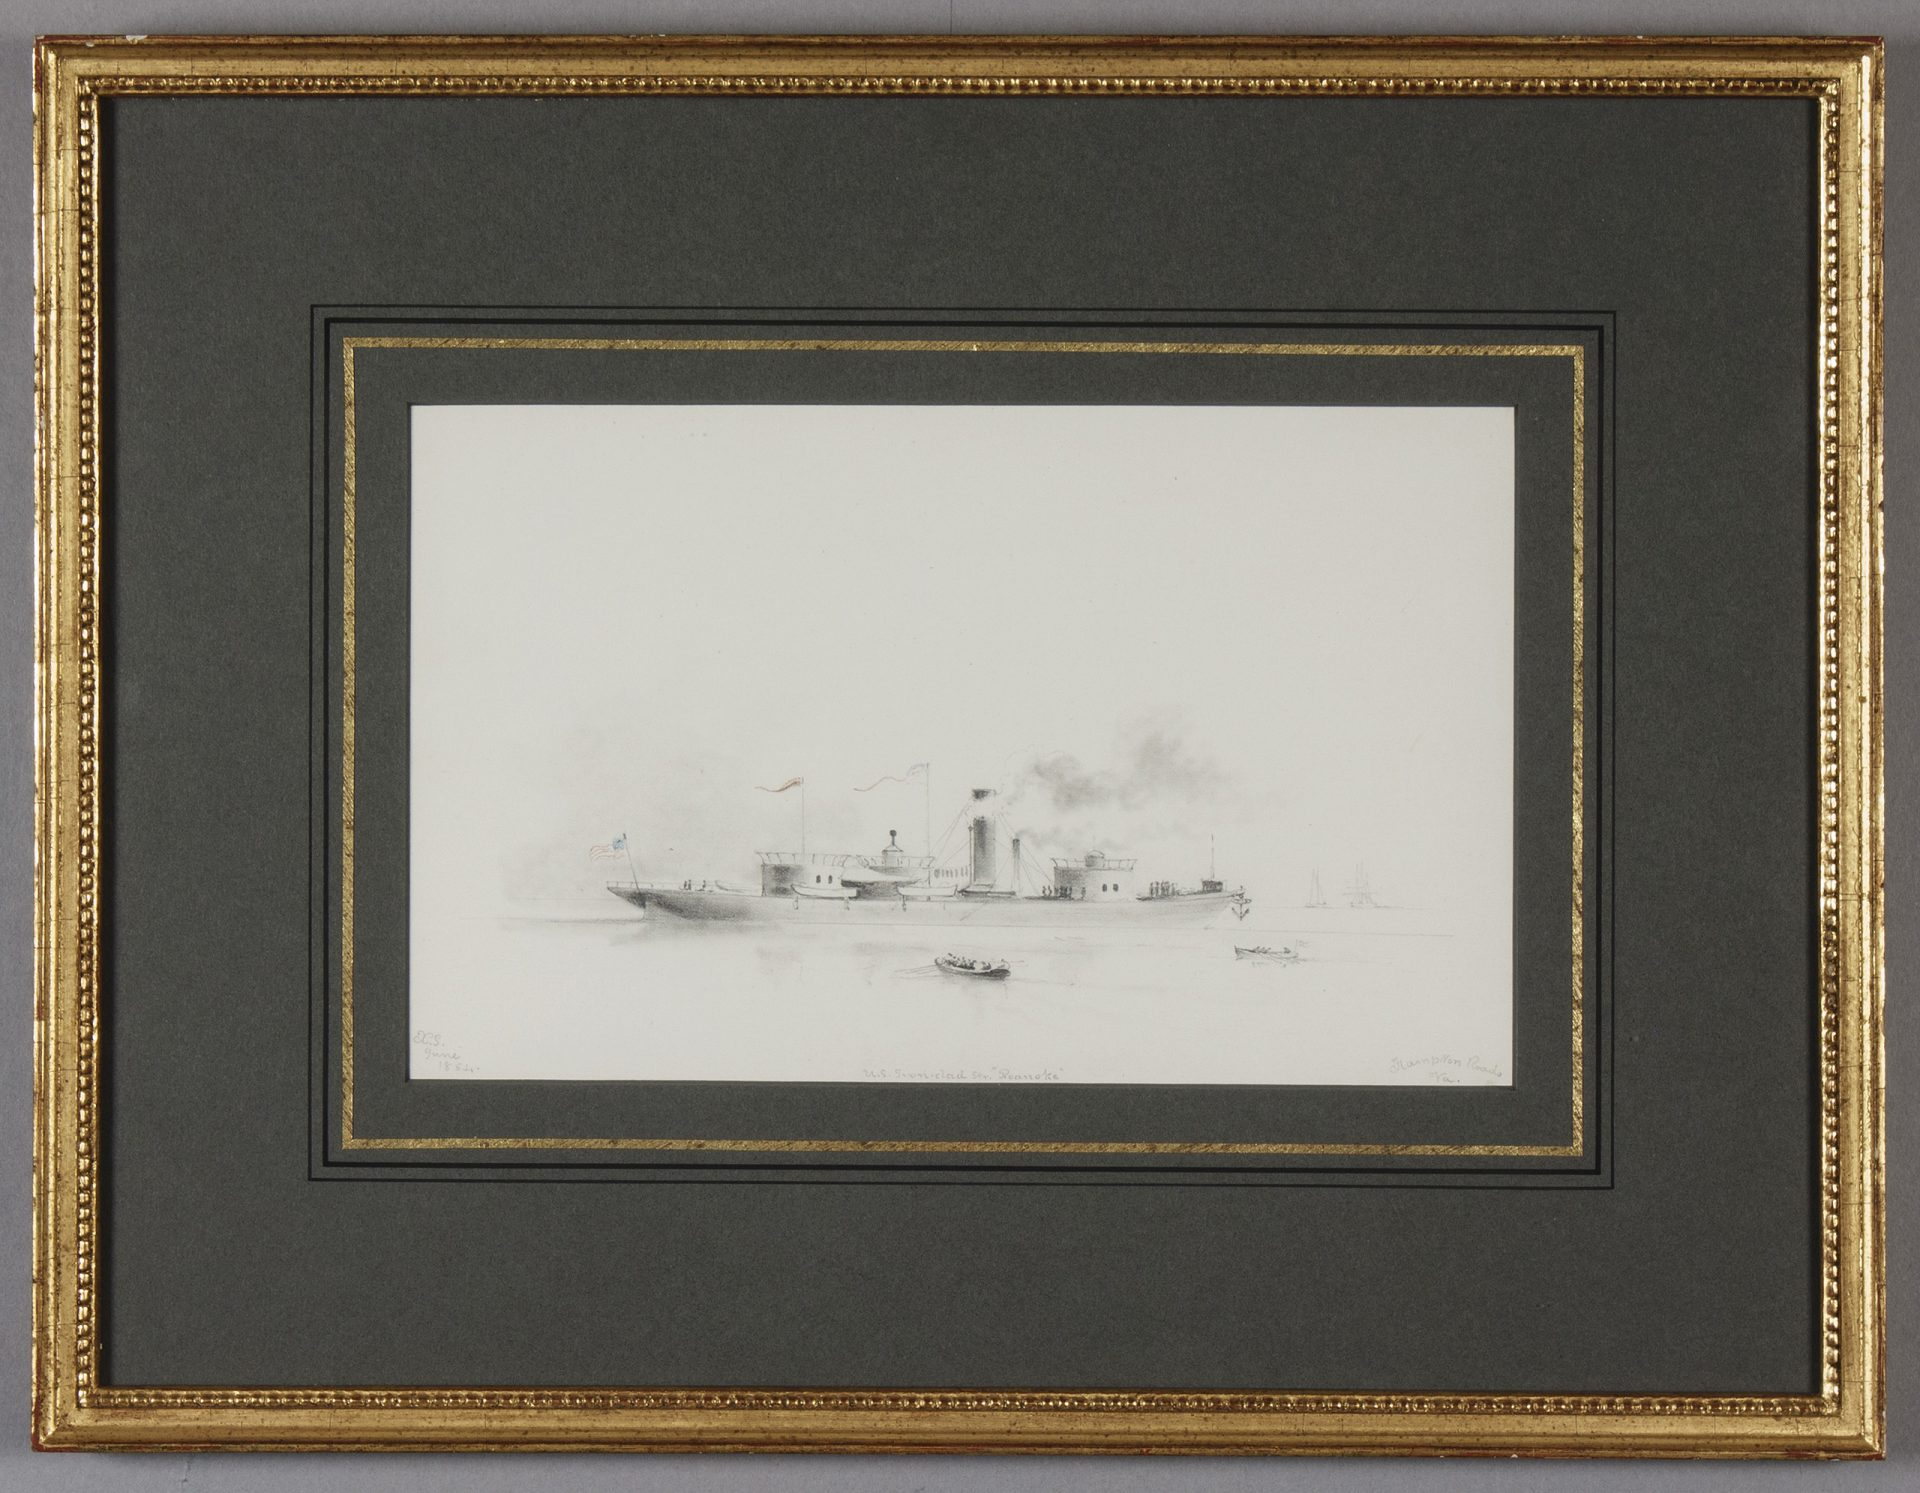 U.S. Ironclad Steamer FRAMED (Xanthus Russell Smith)